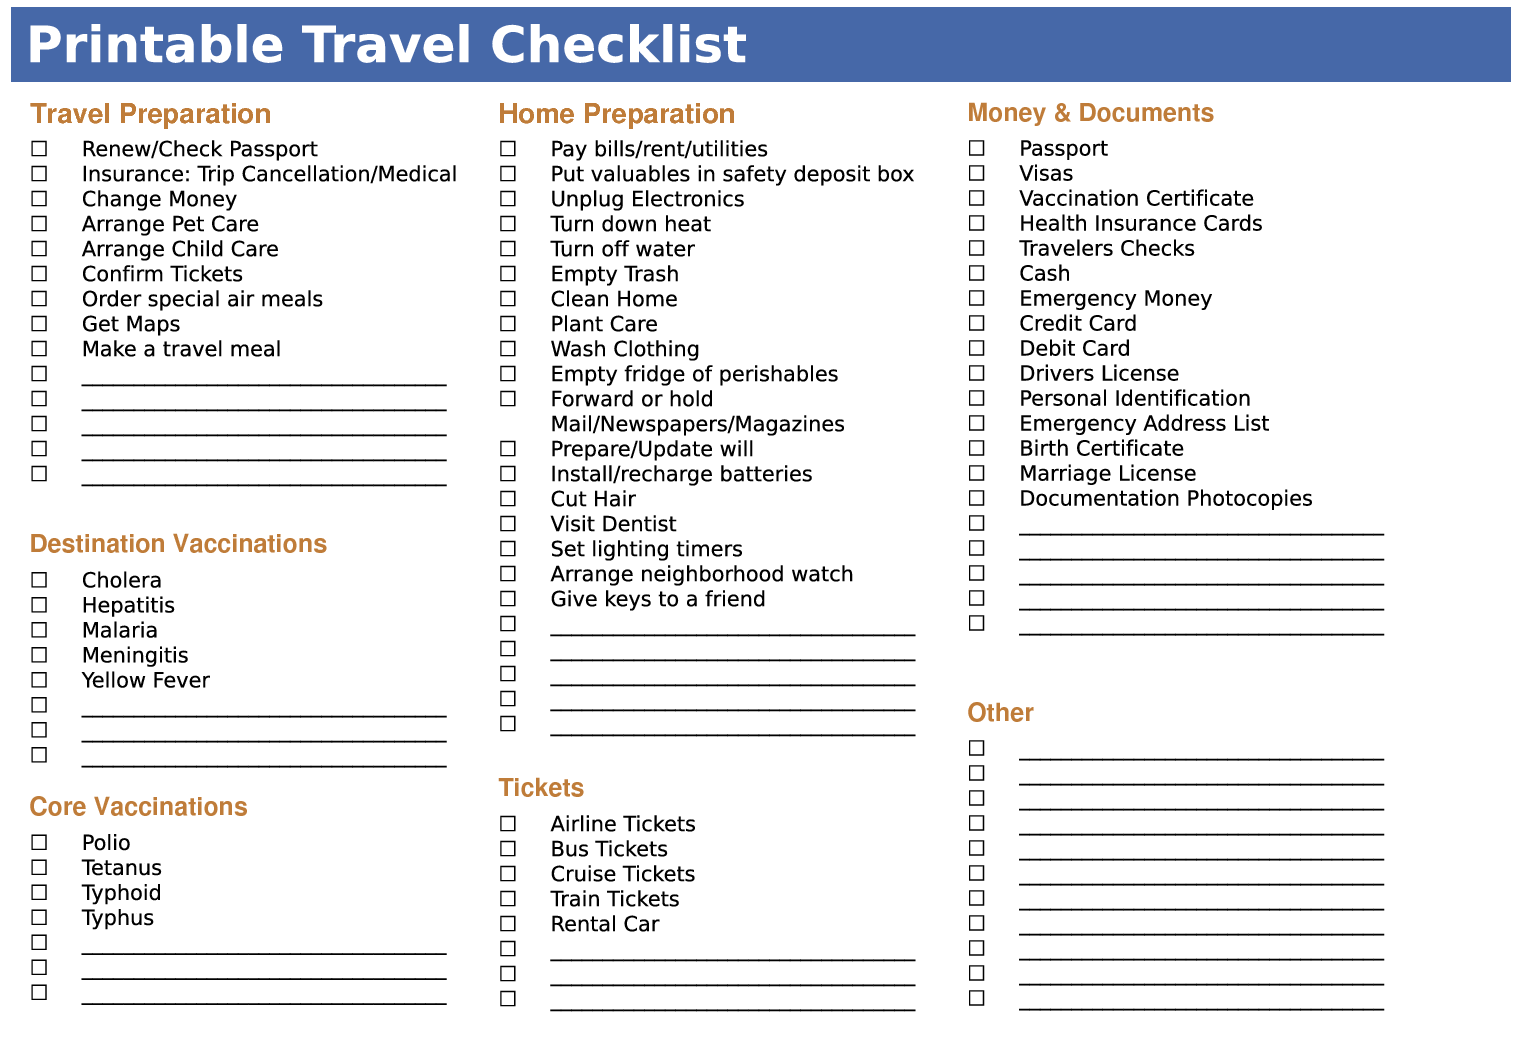 8 Images of Printable Vacation Checklist